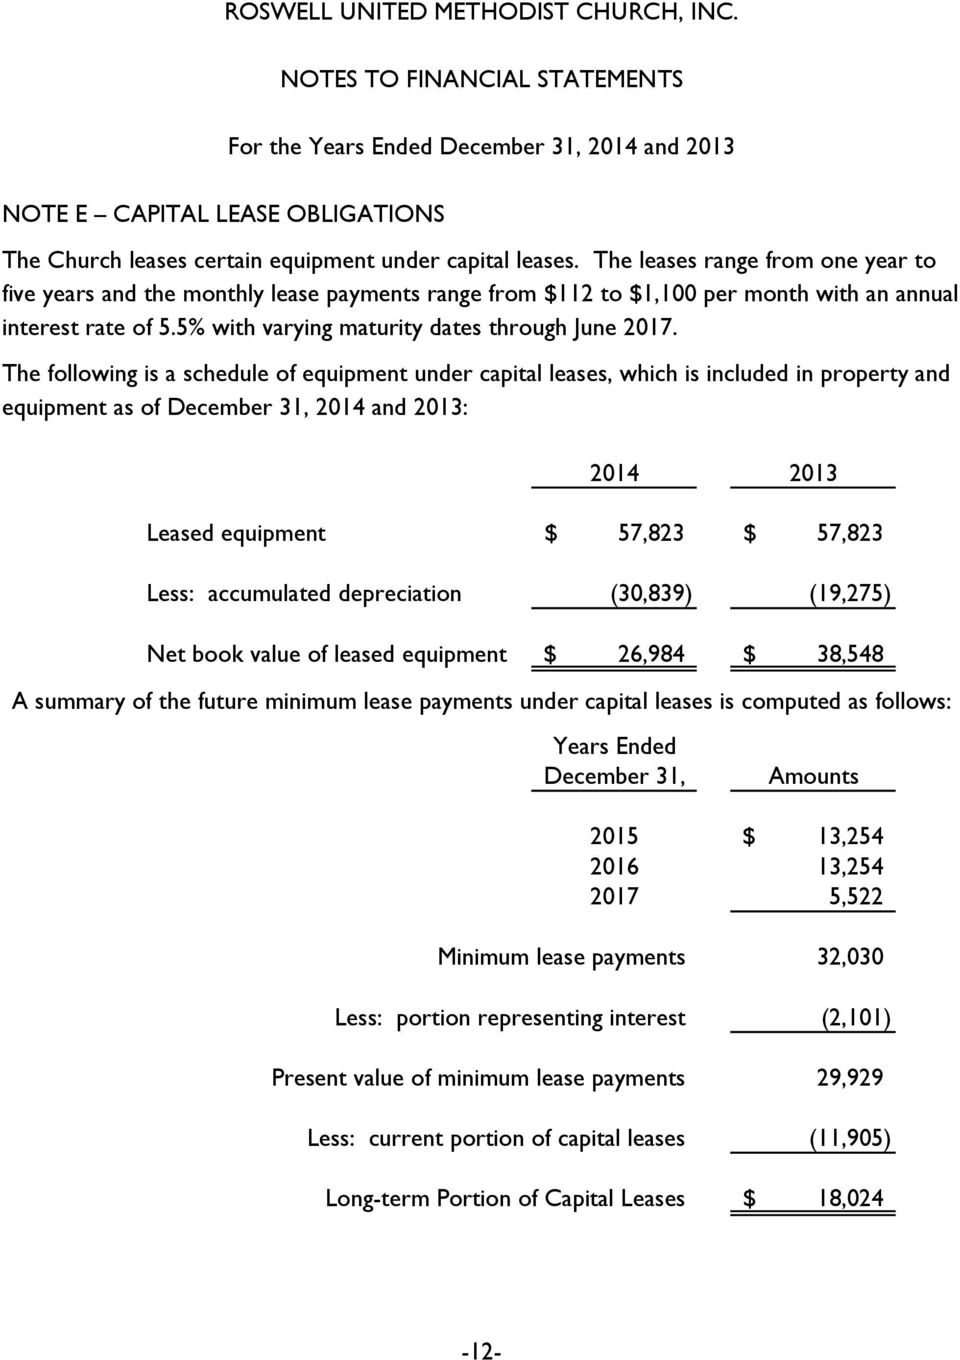 The following is a schedule of equipment under capital leases, which is included in property and equipment as of December 31, 2014 and 2013: 2014 2013 Leased equipment $ 57,823 $ 57,823 Less: